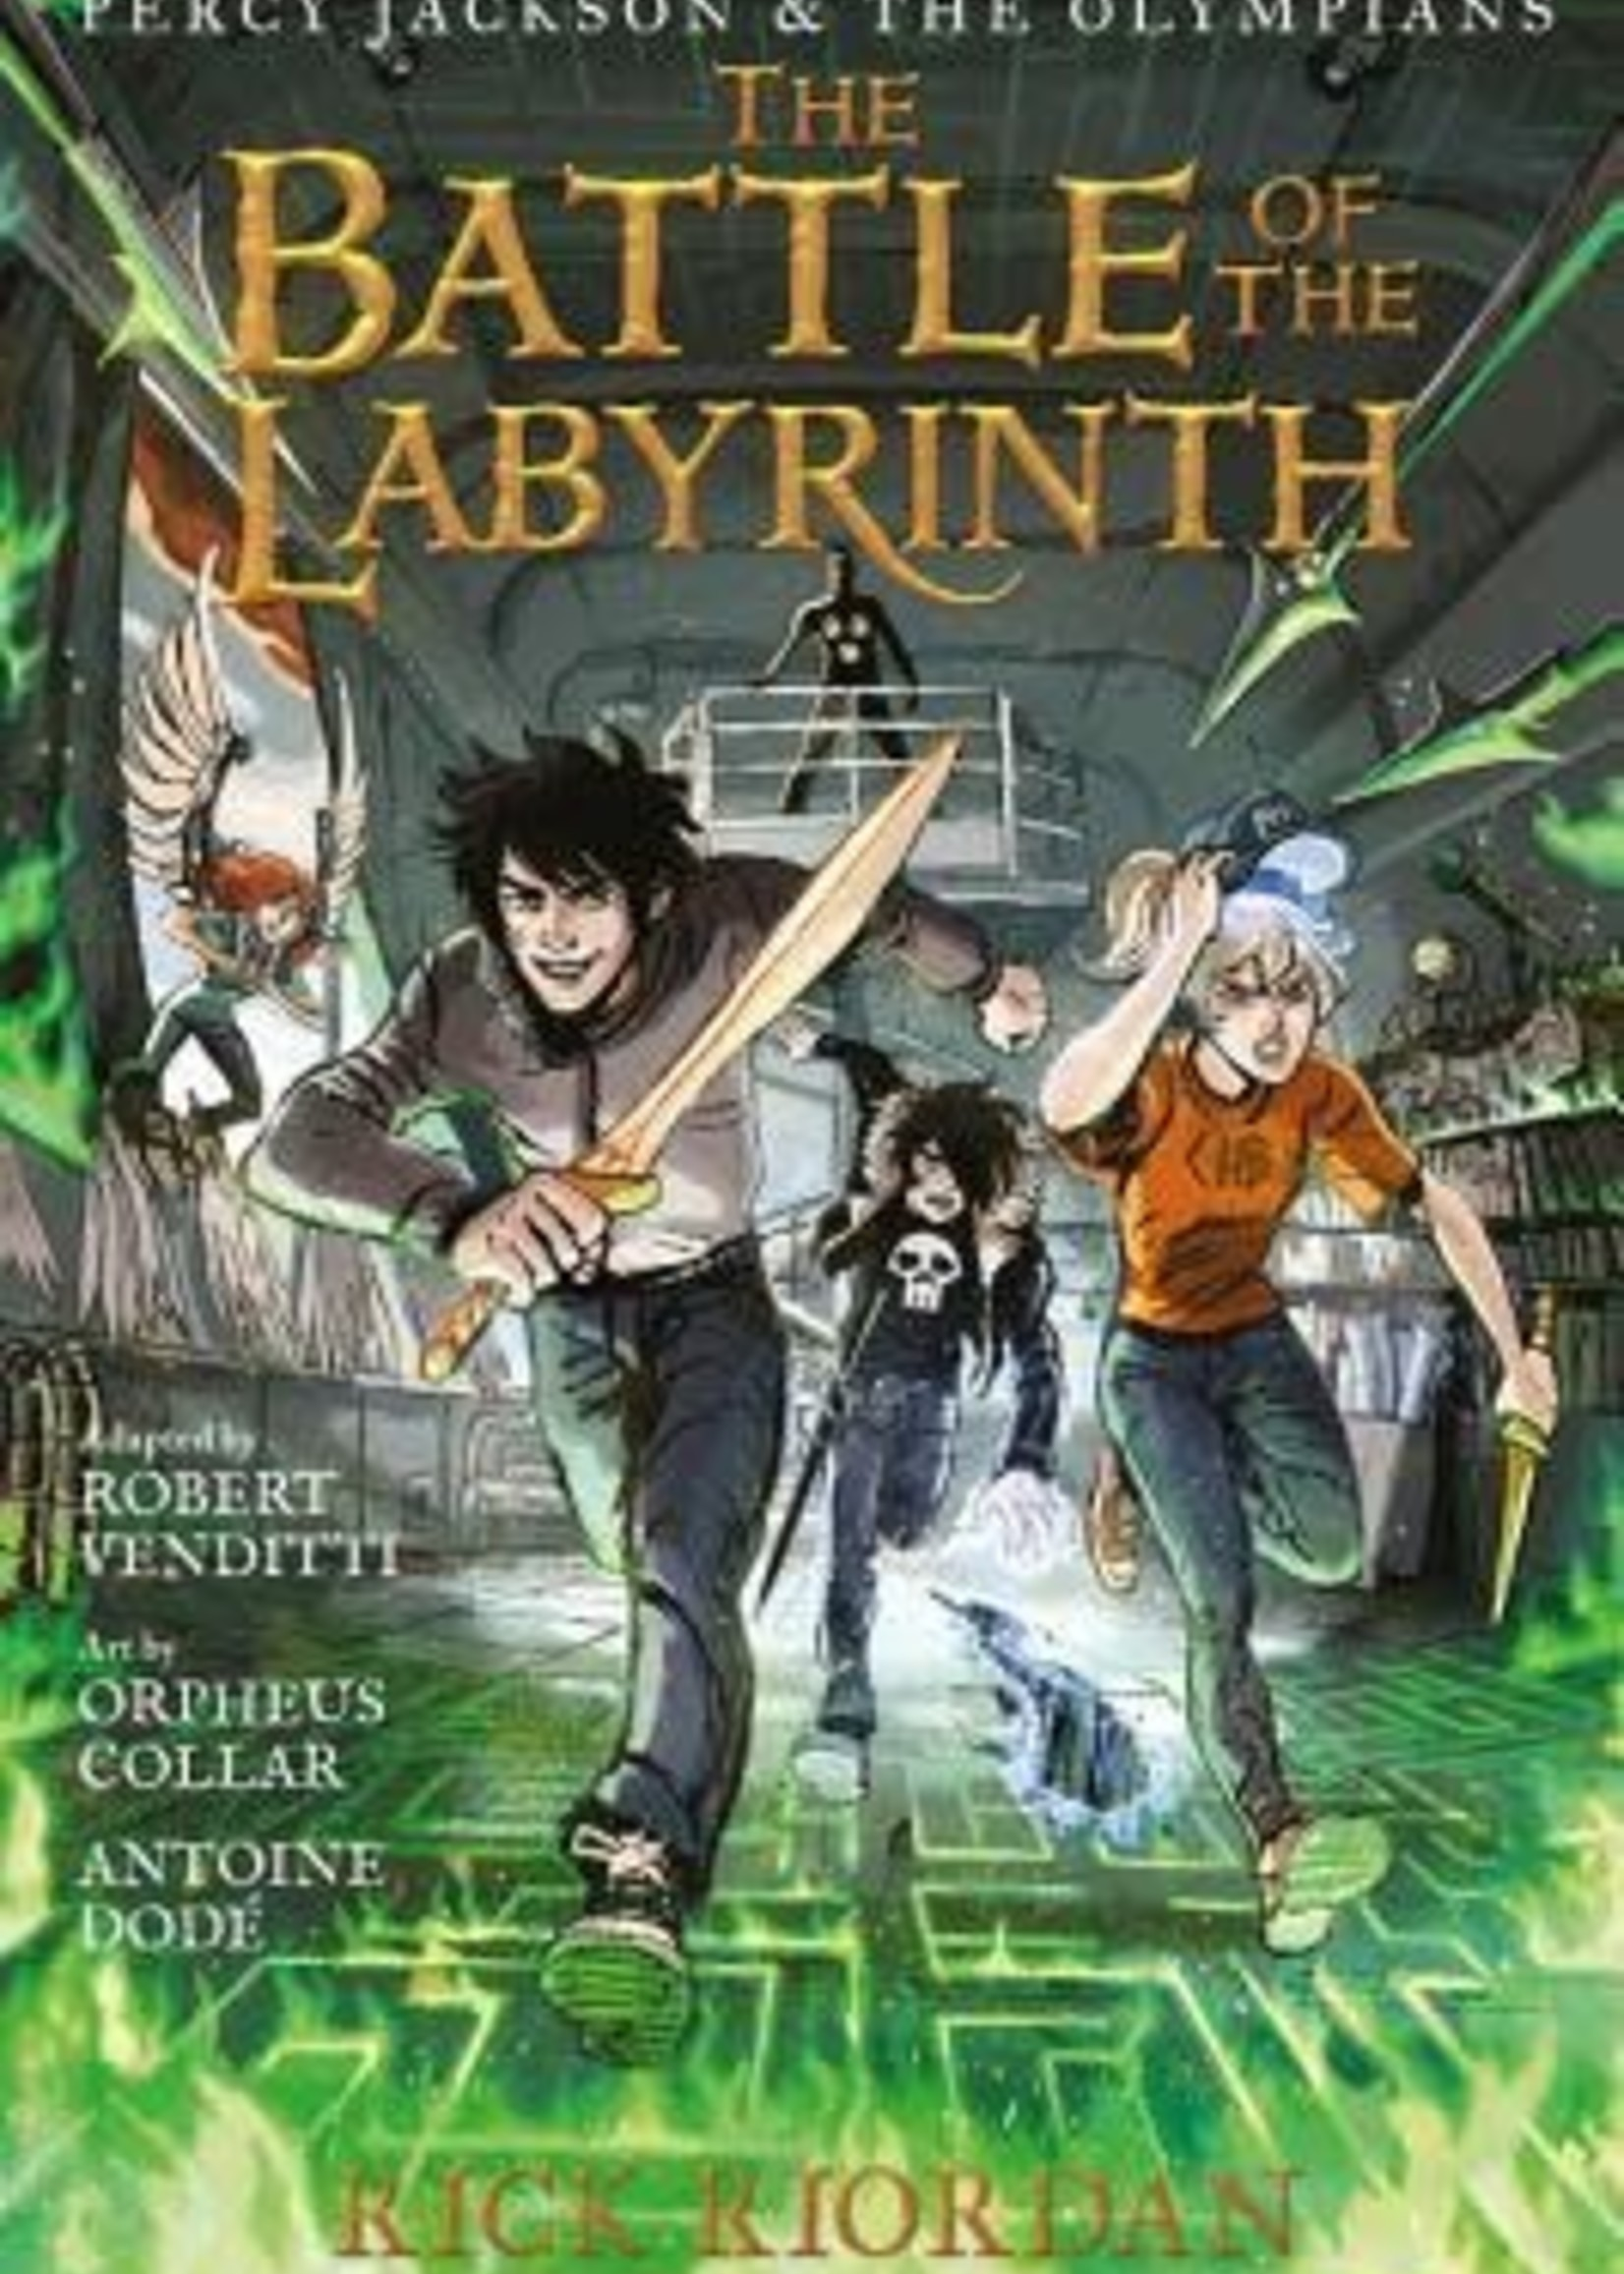 The Battle of the Labyrinth: The Graphic Novel (Percy Jackson and the Olympians: The Graphic Novels #4) by Robert Venditti,  Rick Riordan,  Orpheus Collar,  Antoine Dode